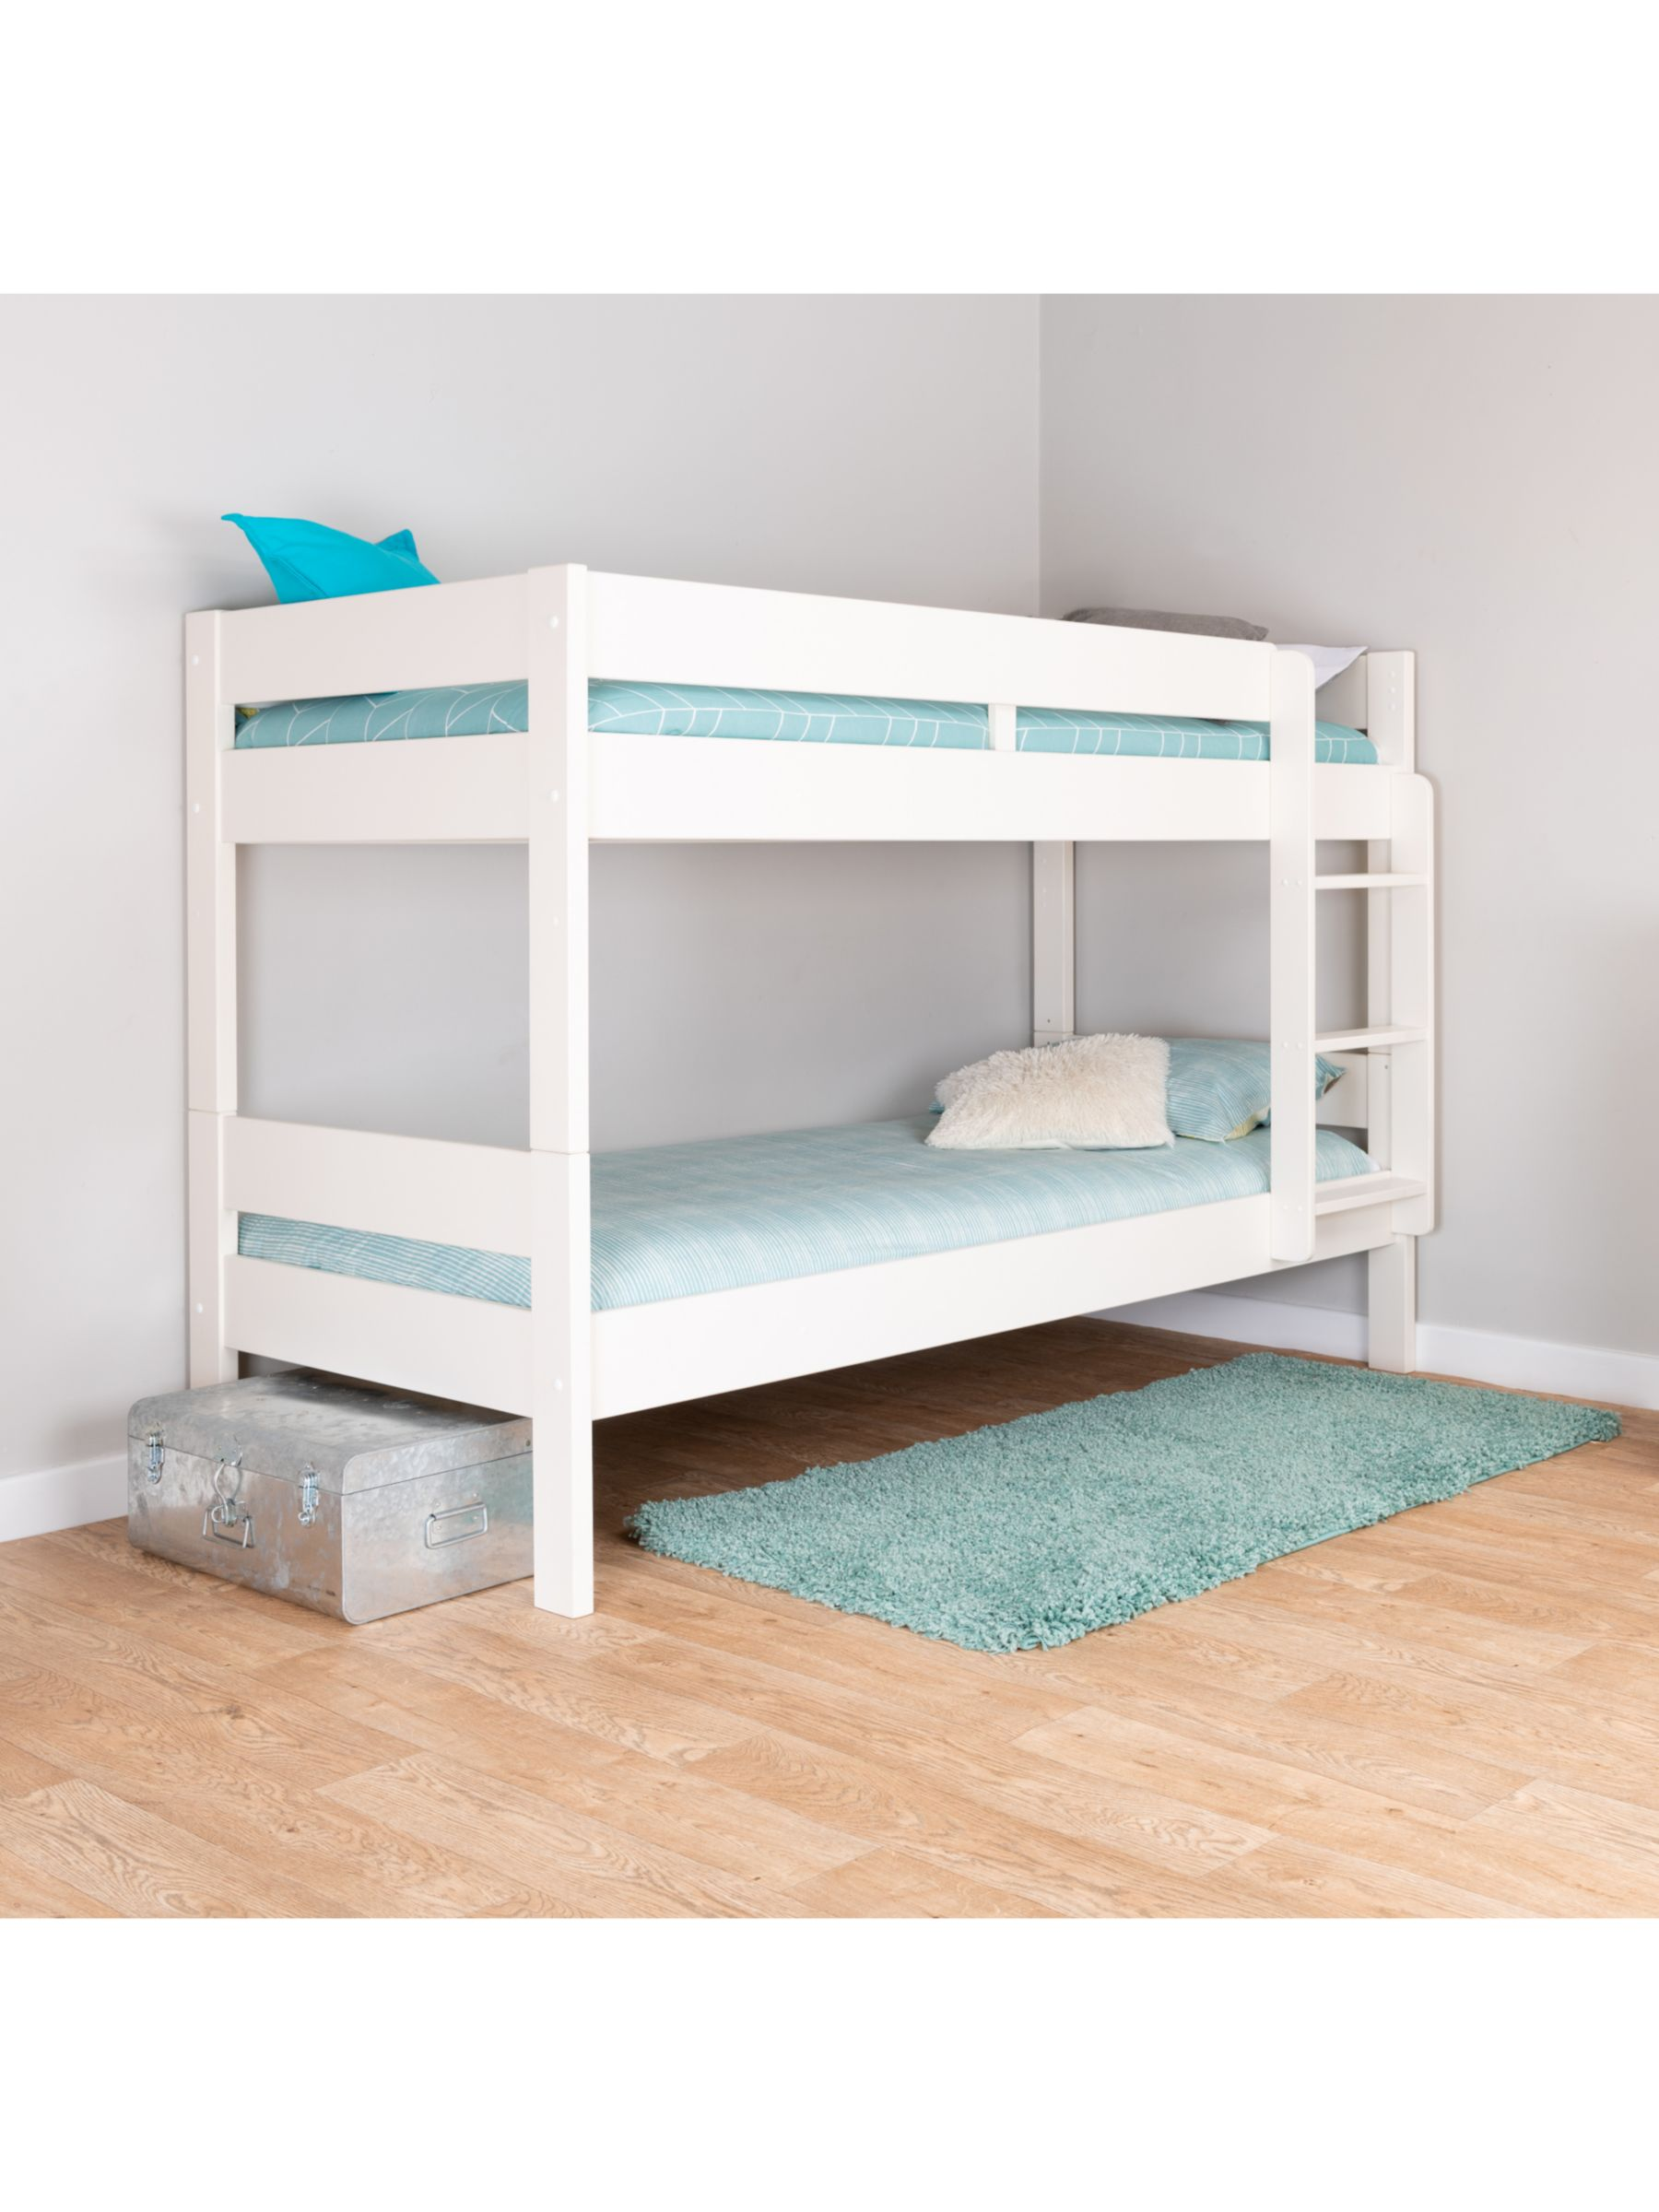 Picture of: Stompa Compact Detachable Bunk Bed Single White At John Lewis Partners